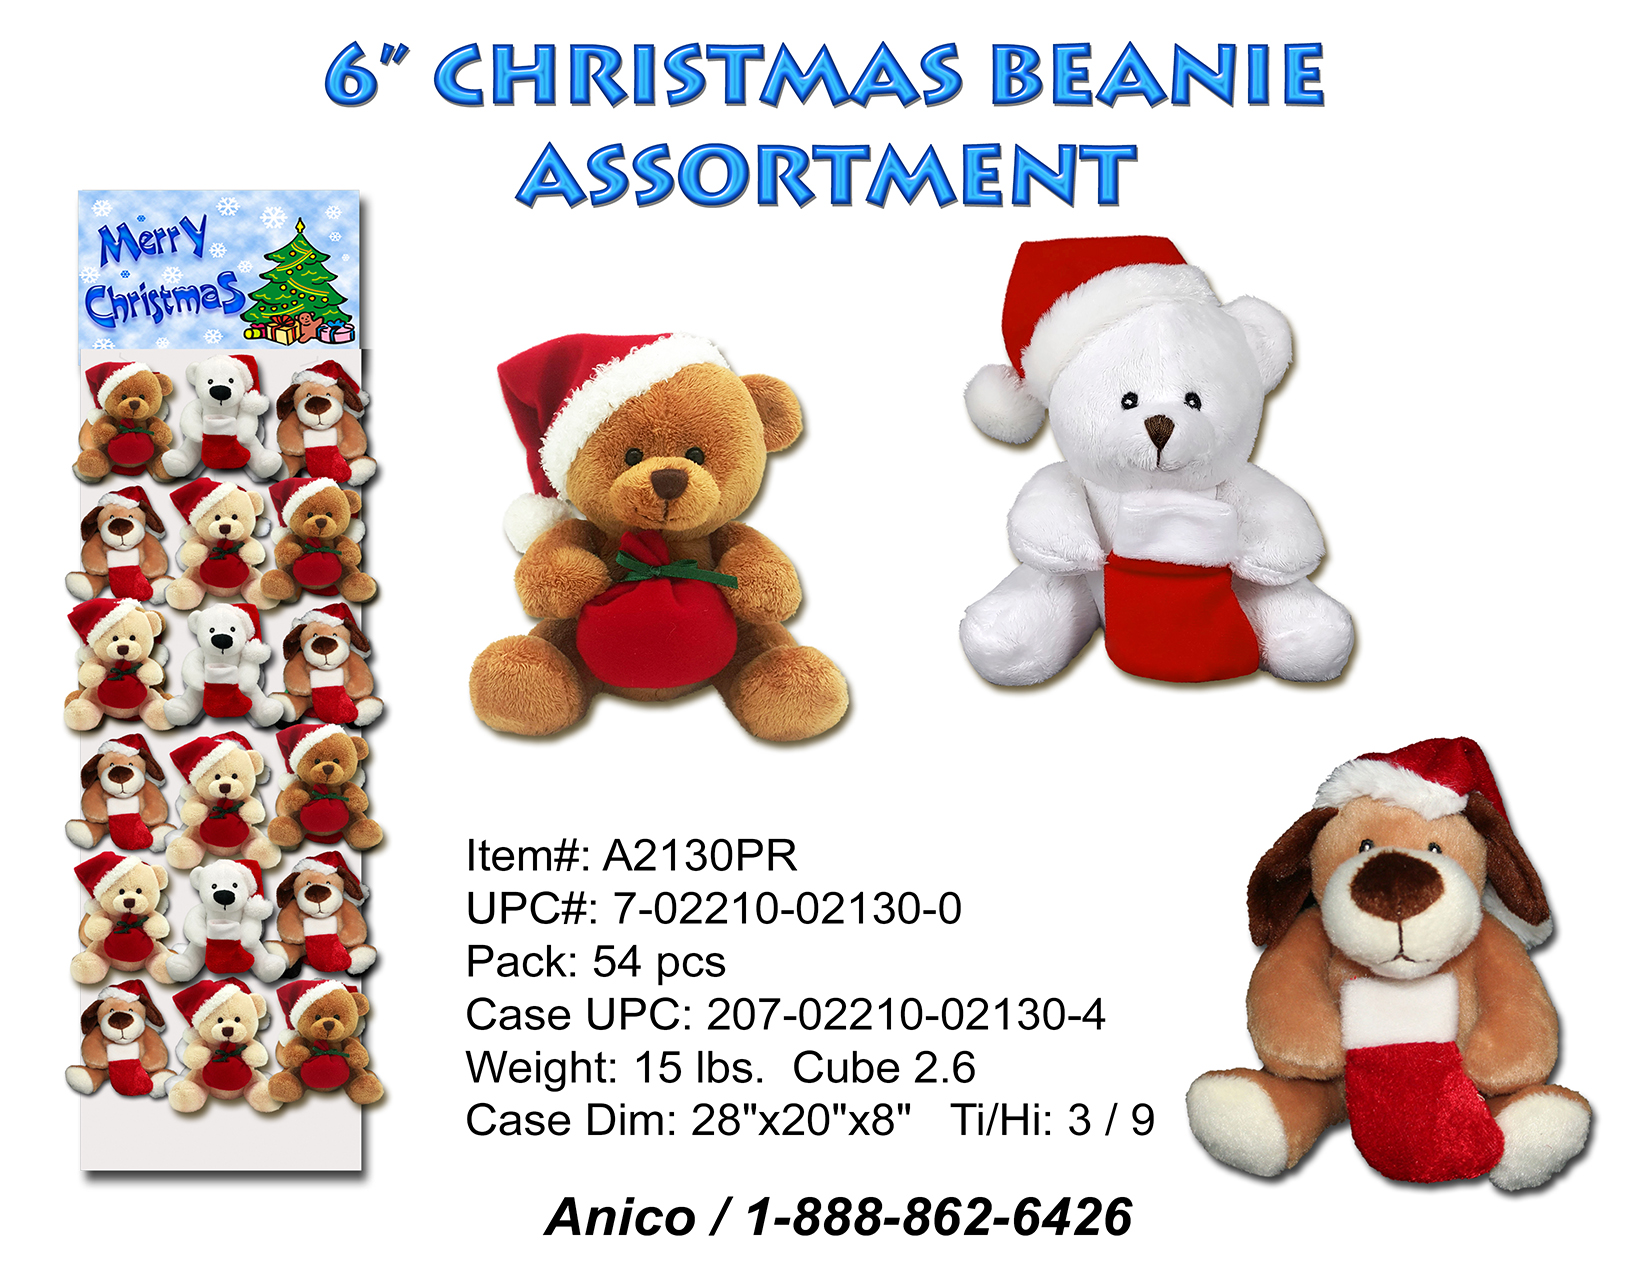 A2130PR Christmas Beanie Sheet 100219 co